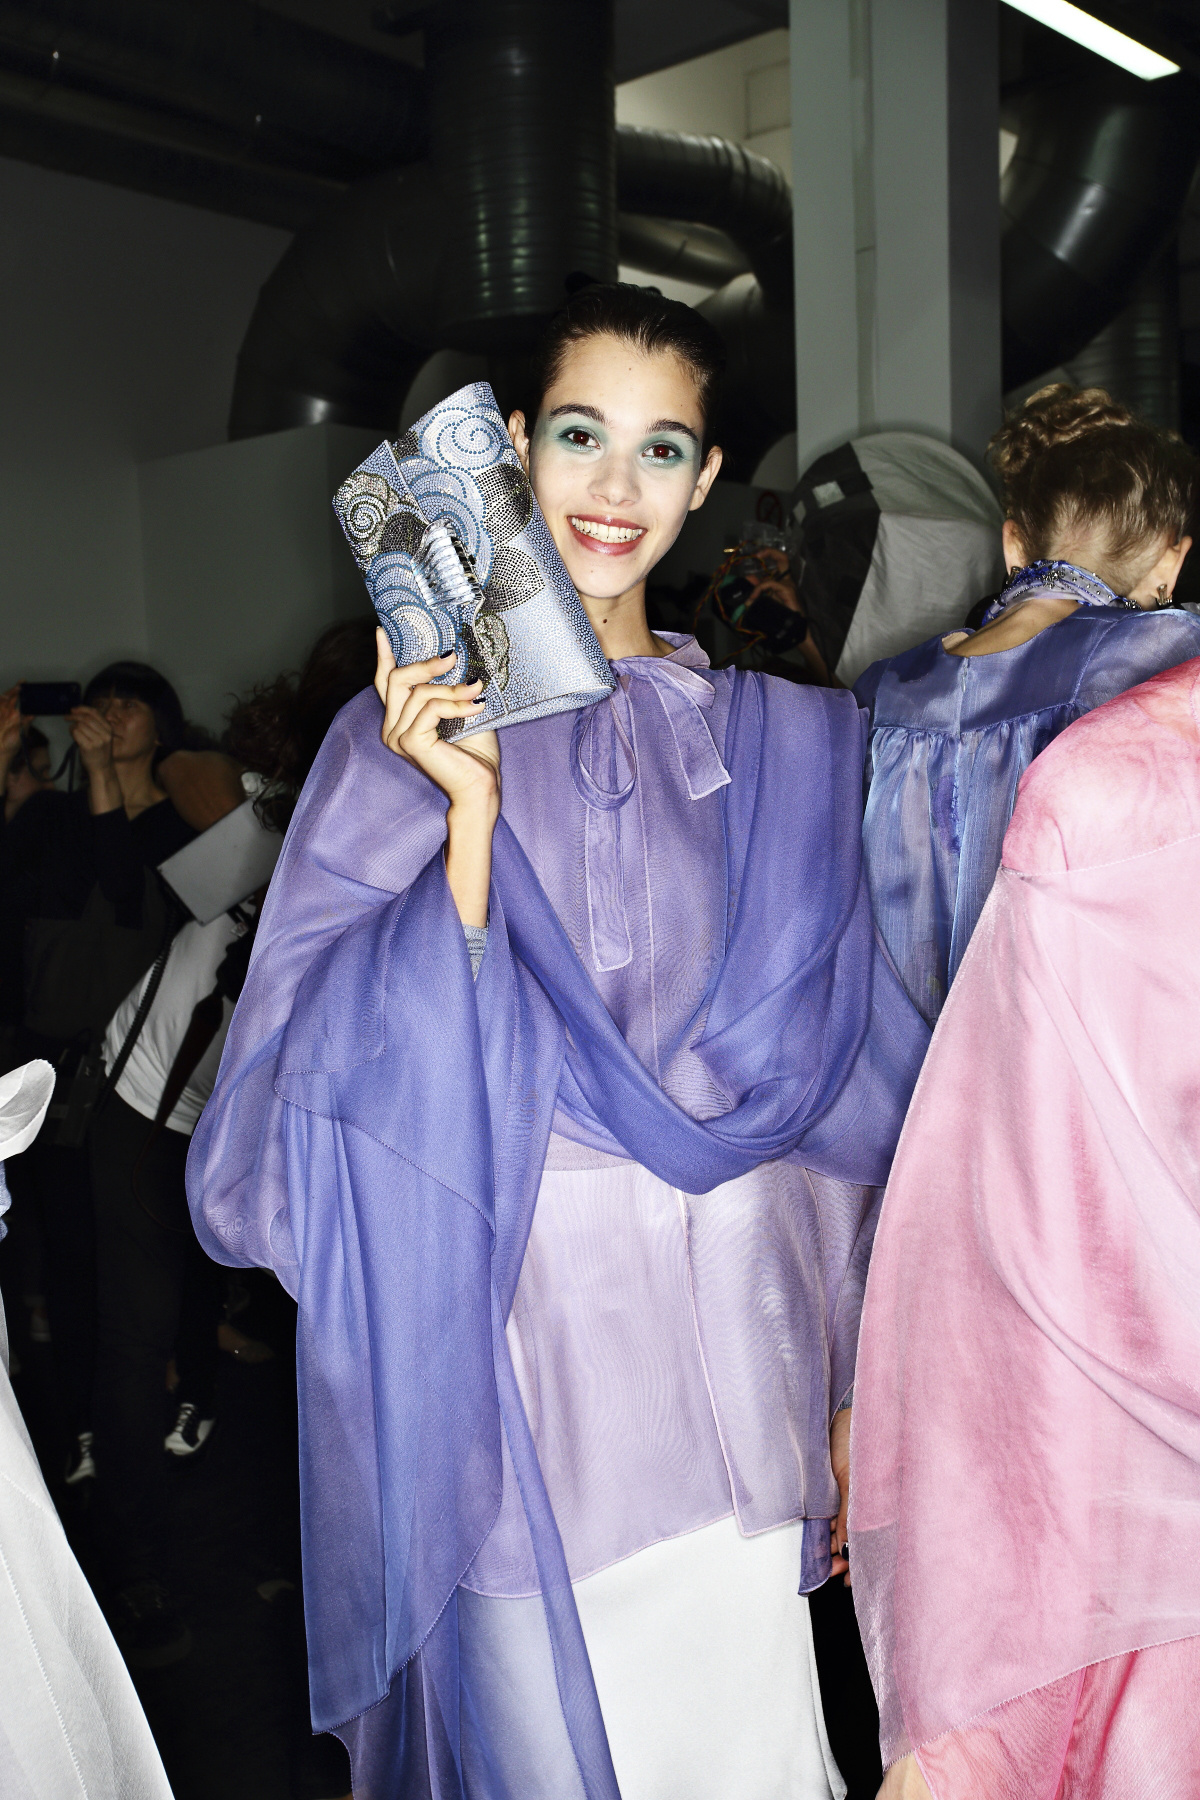 Giorgio Armani SS14 Fashion Show Milan Backstage